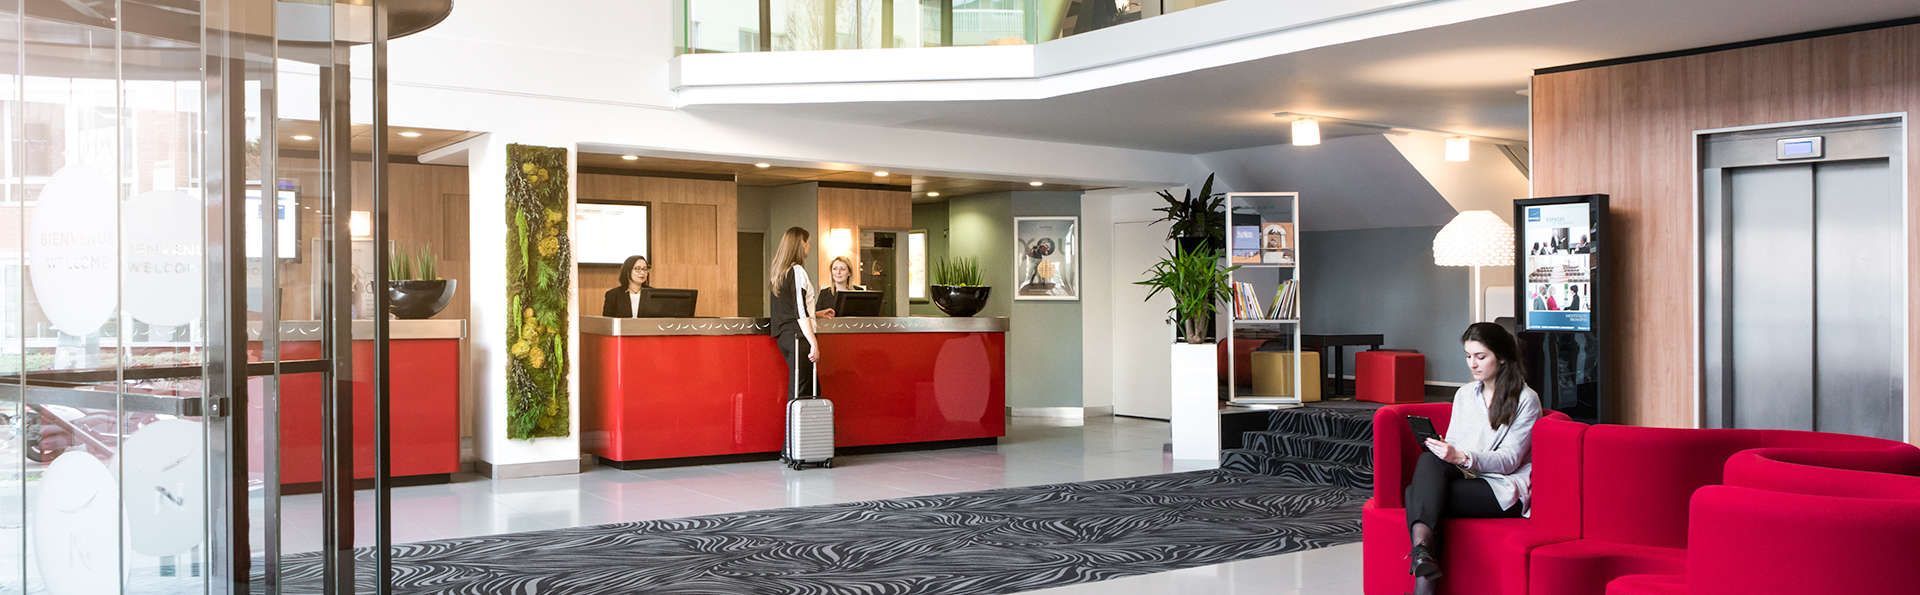 Novotel Paris Suresnes Longchamp - Edit_Hall.jpg